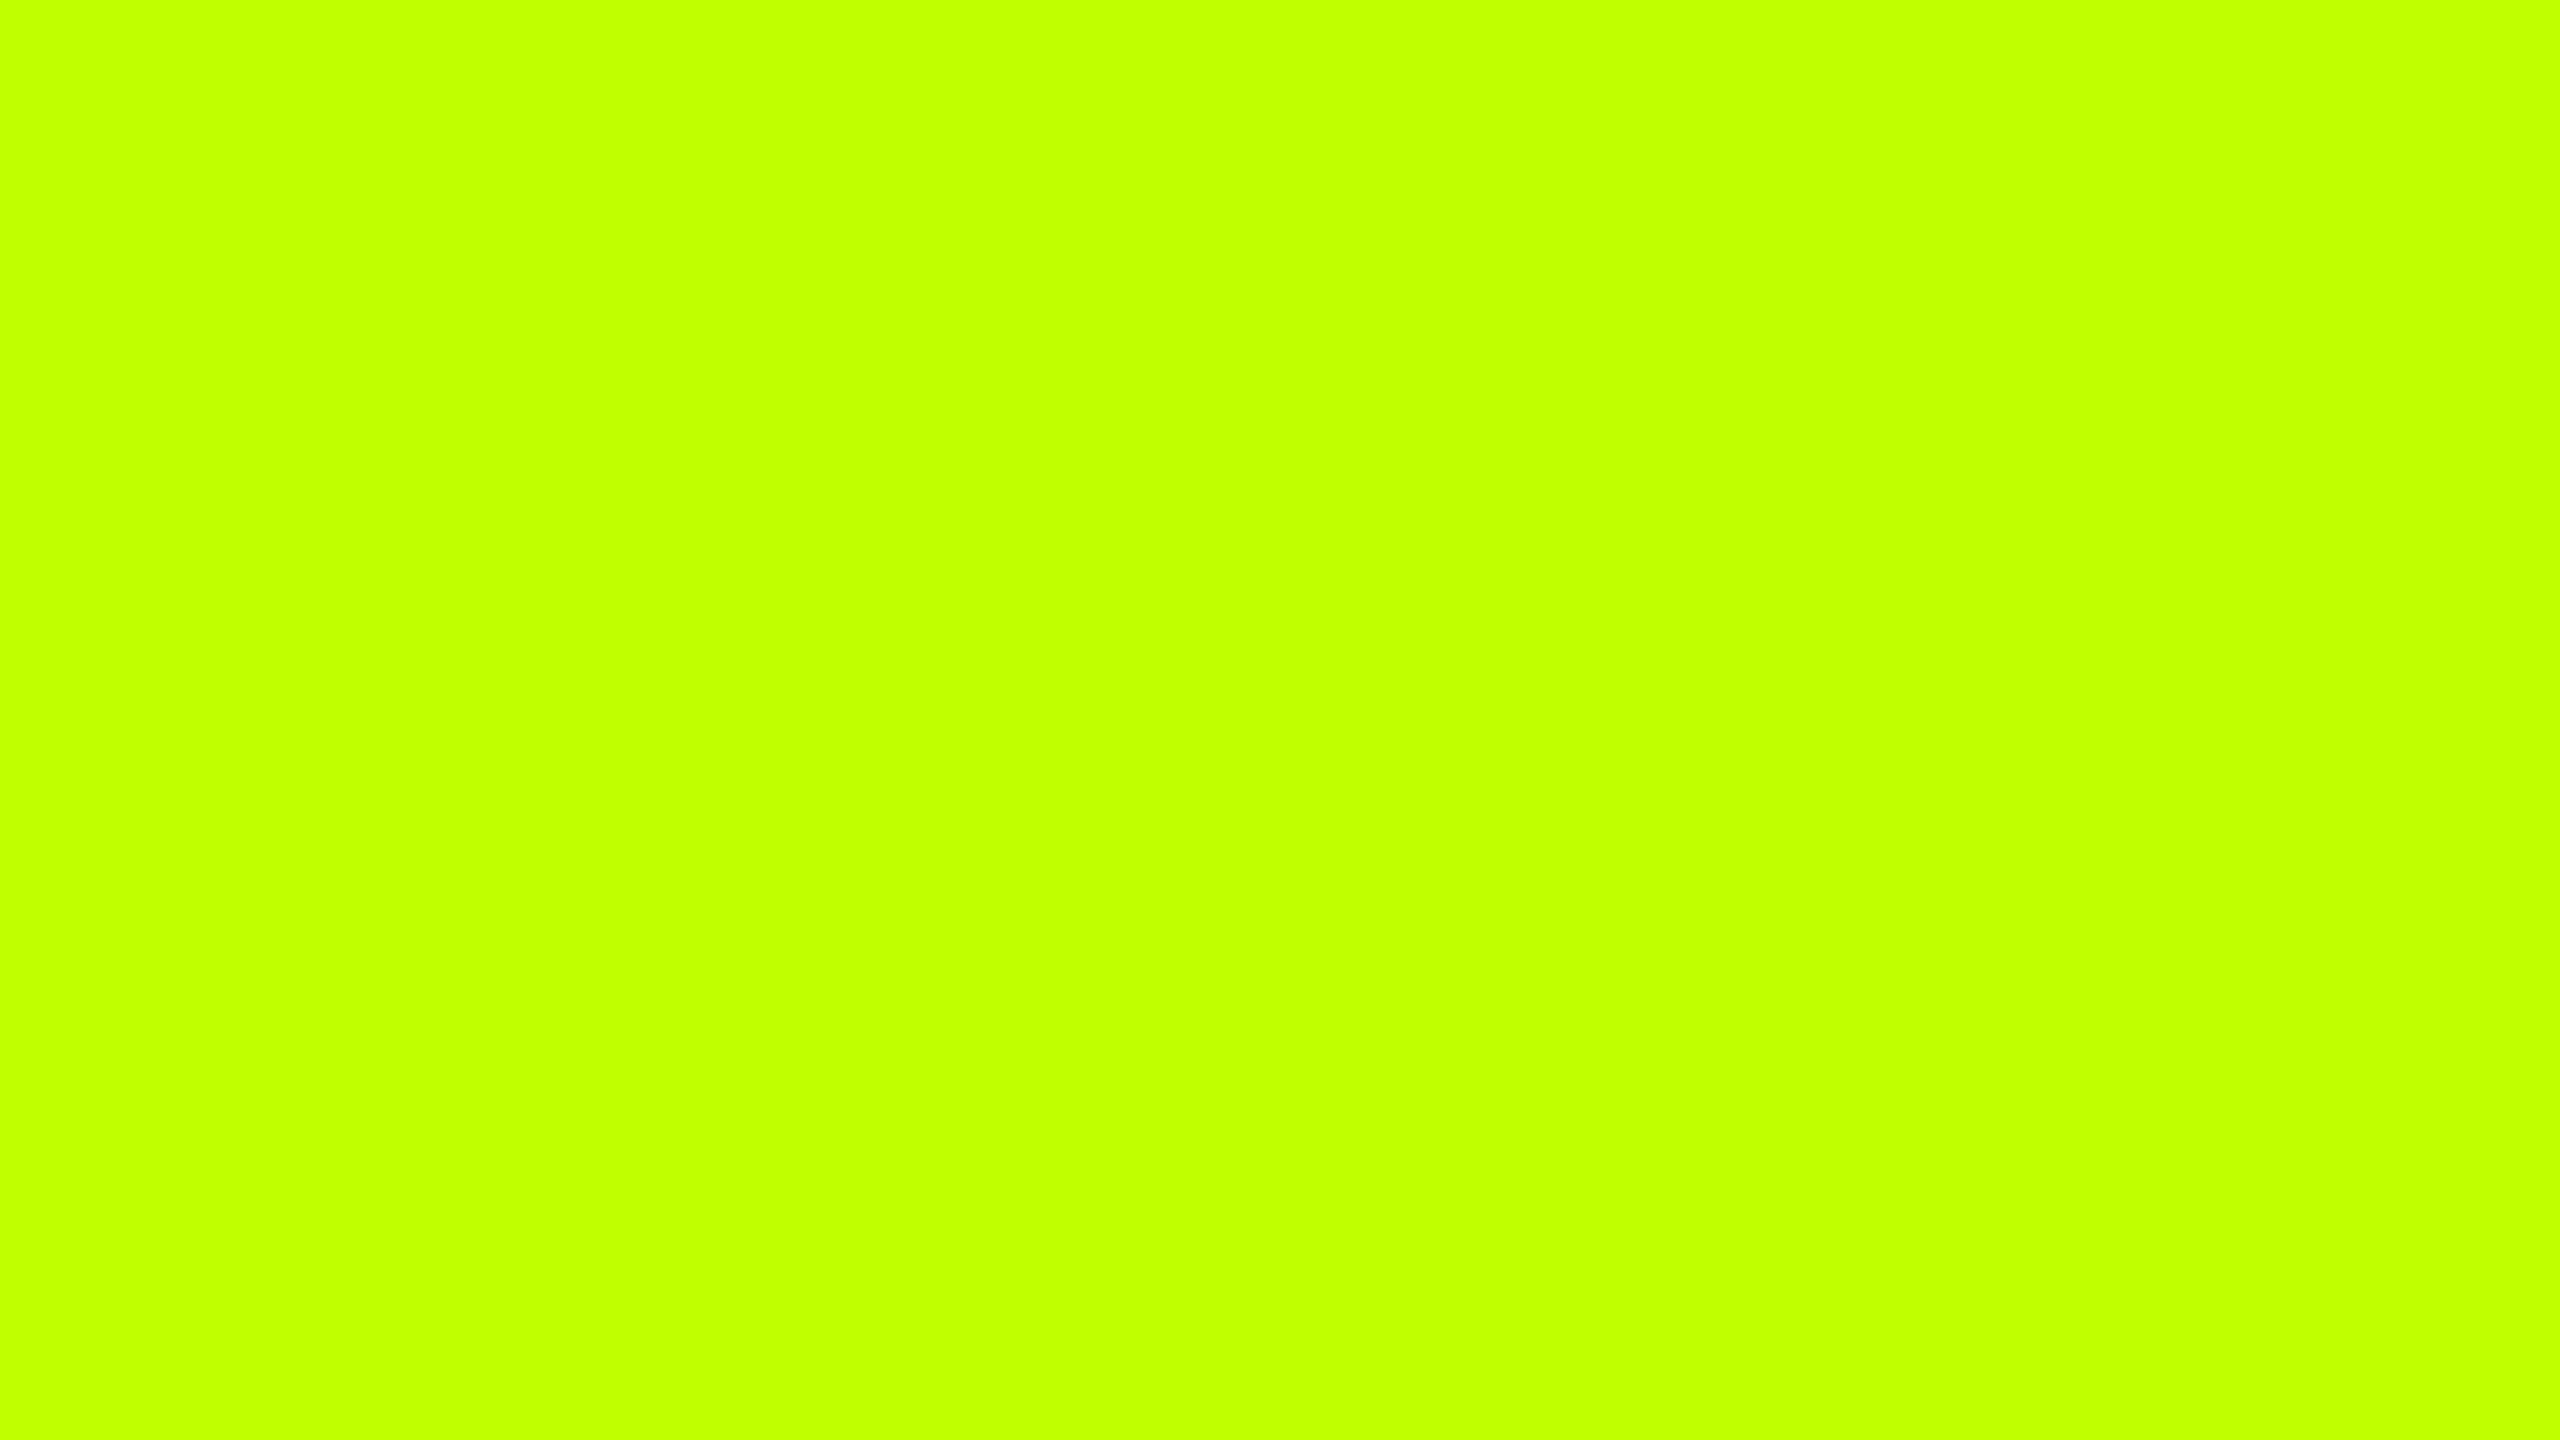 neon green wallpapers - wallpapersafari